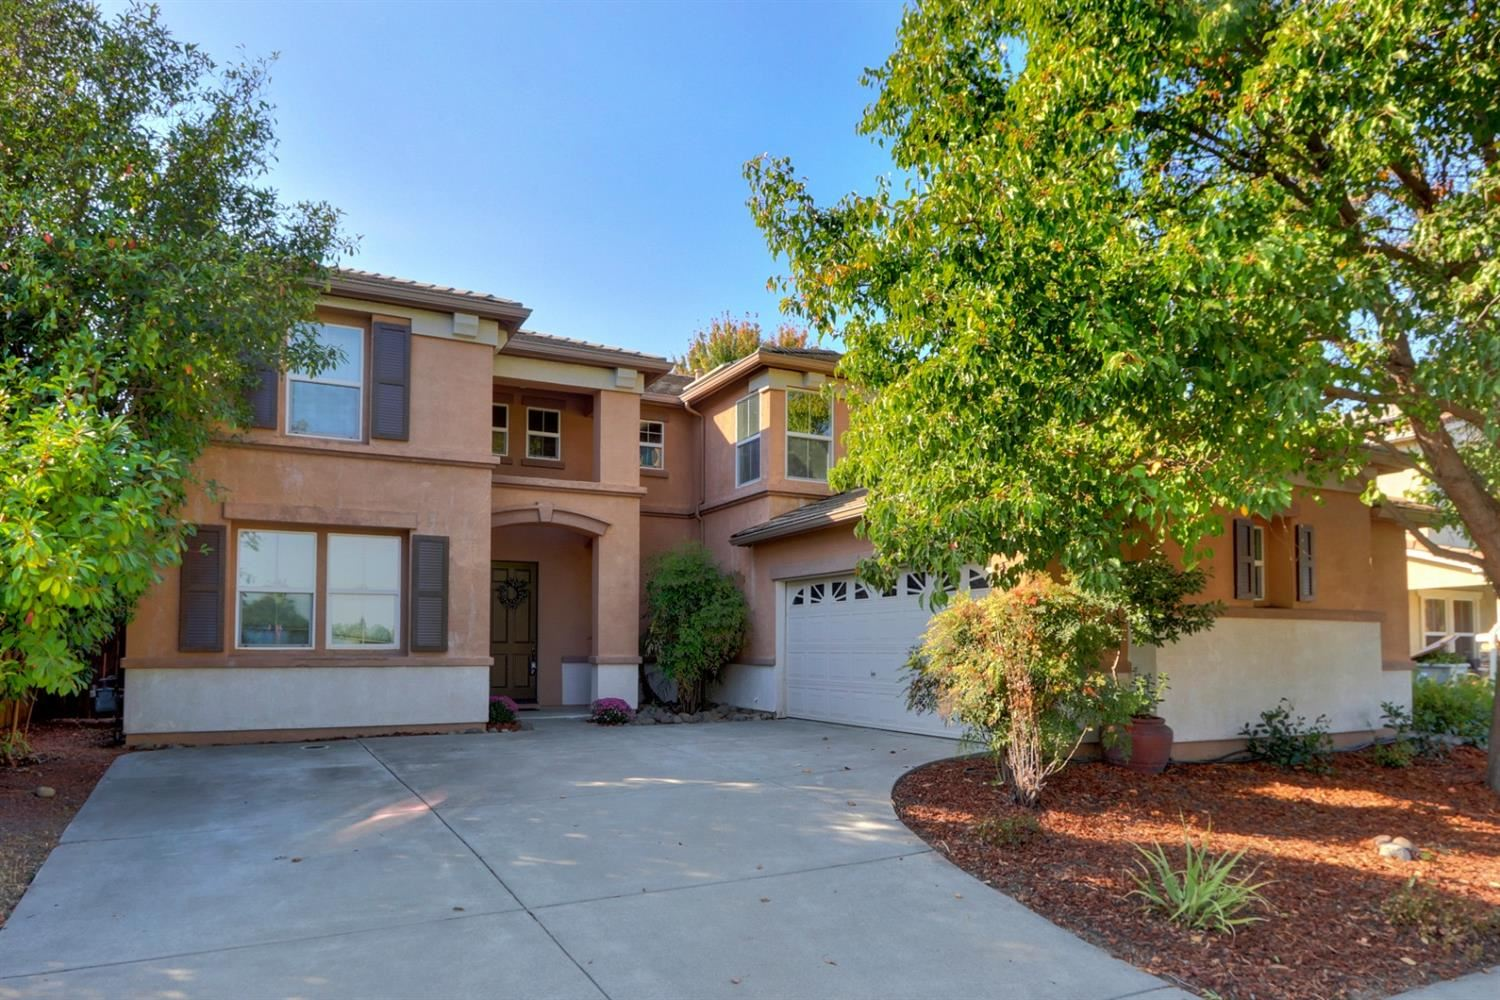 Photo of 2582 Meadowlark Circle, West Sacramento, CA 95691 (MLS # 20063524)